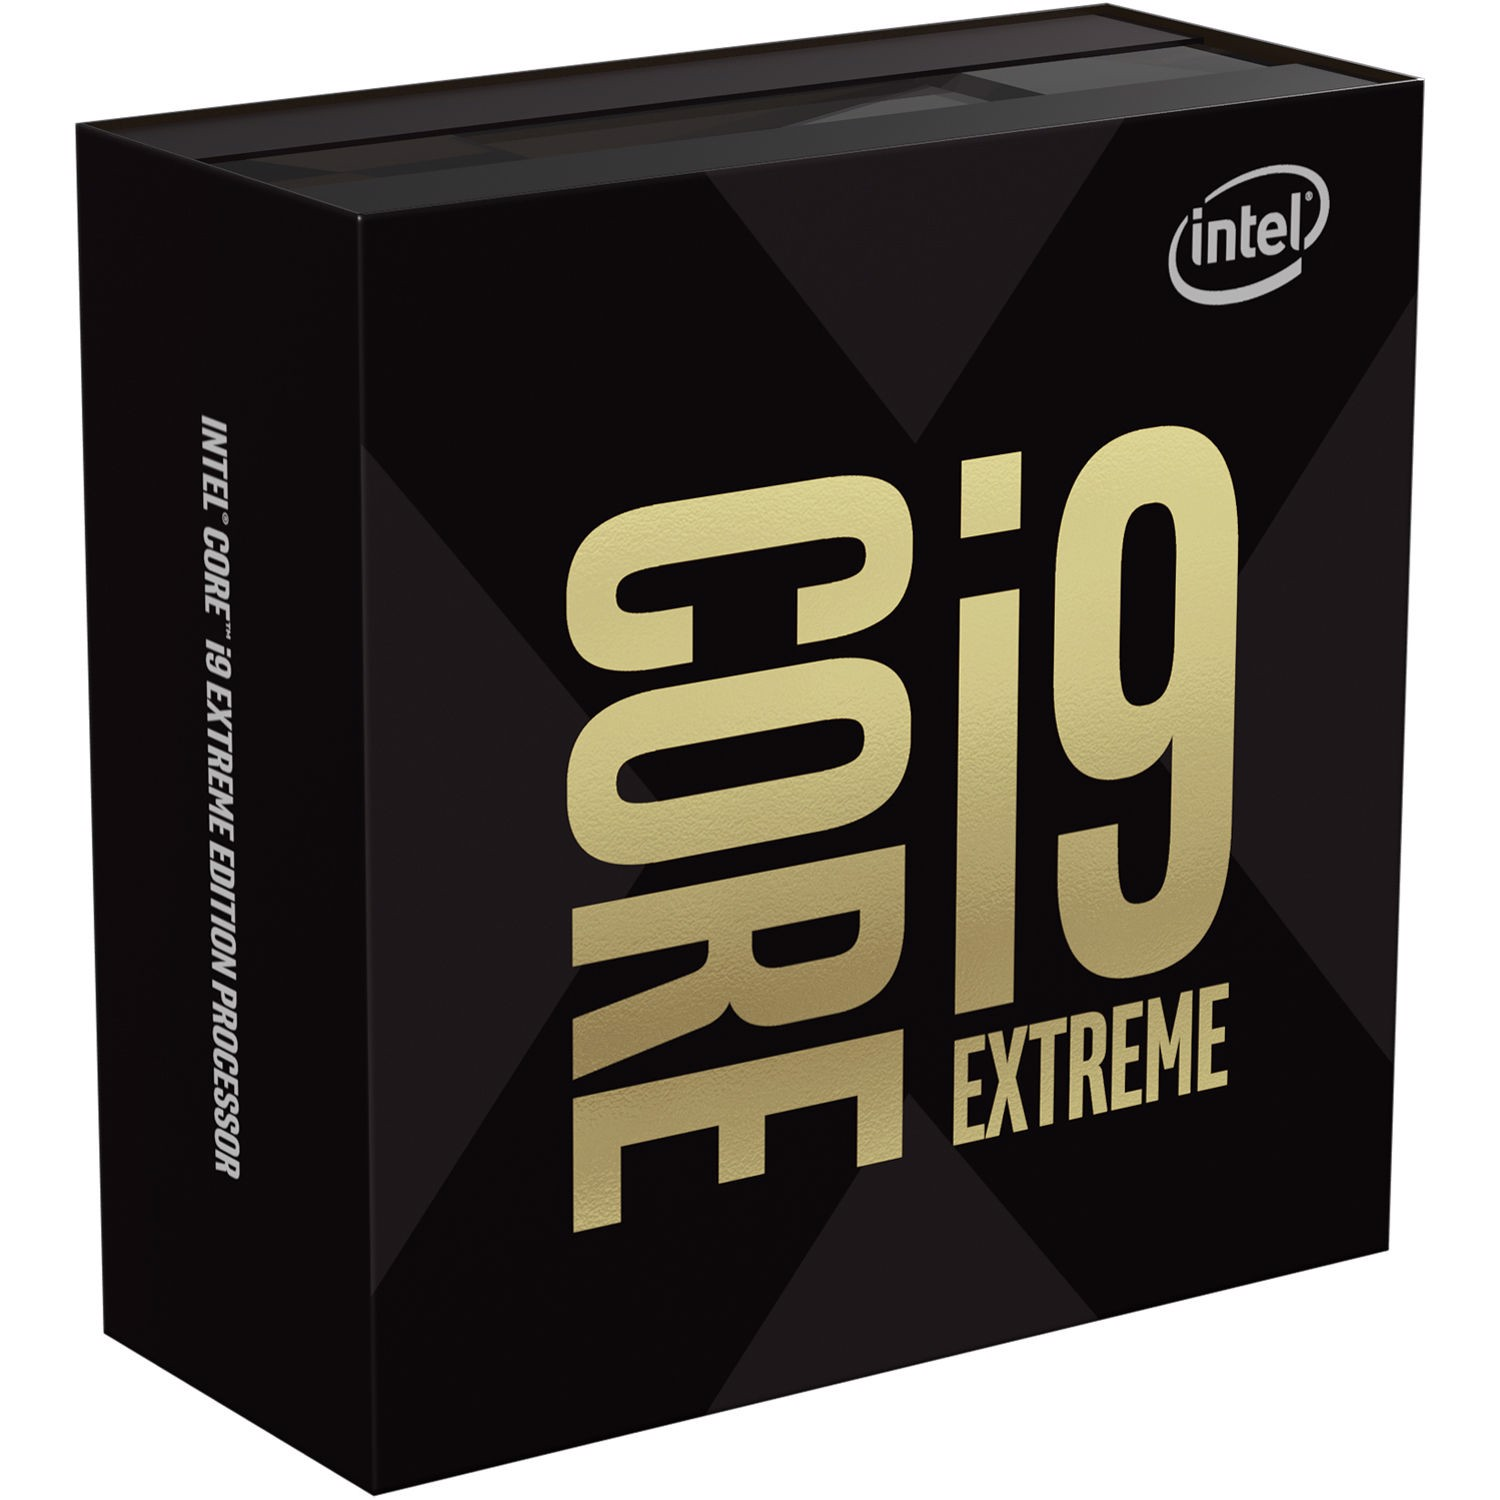 Intel Core i9-9980XE Extreme Edition Processor 24.75M Cache, up to 4.50 GHz Socket 2066